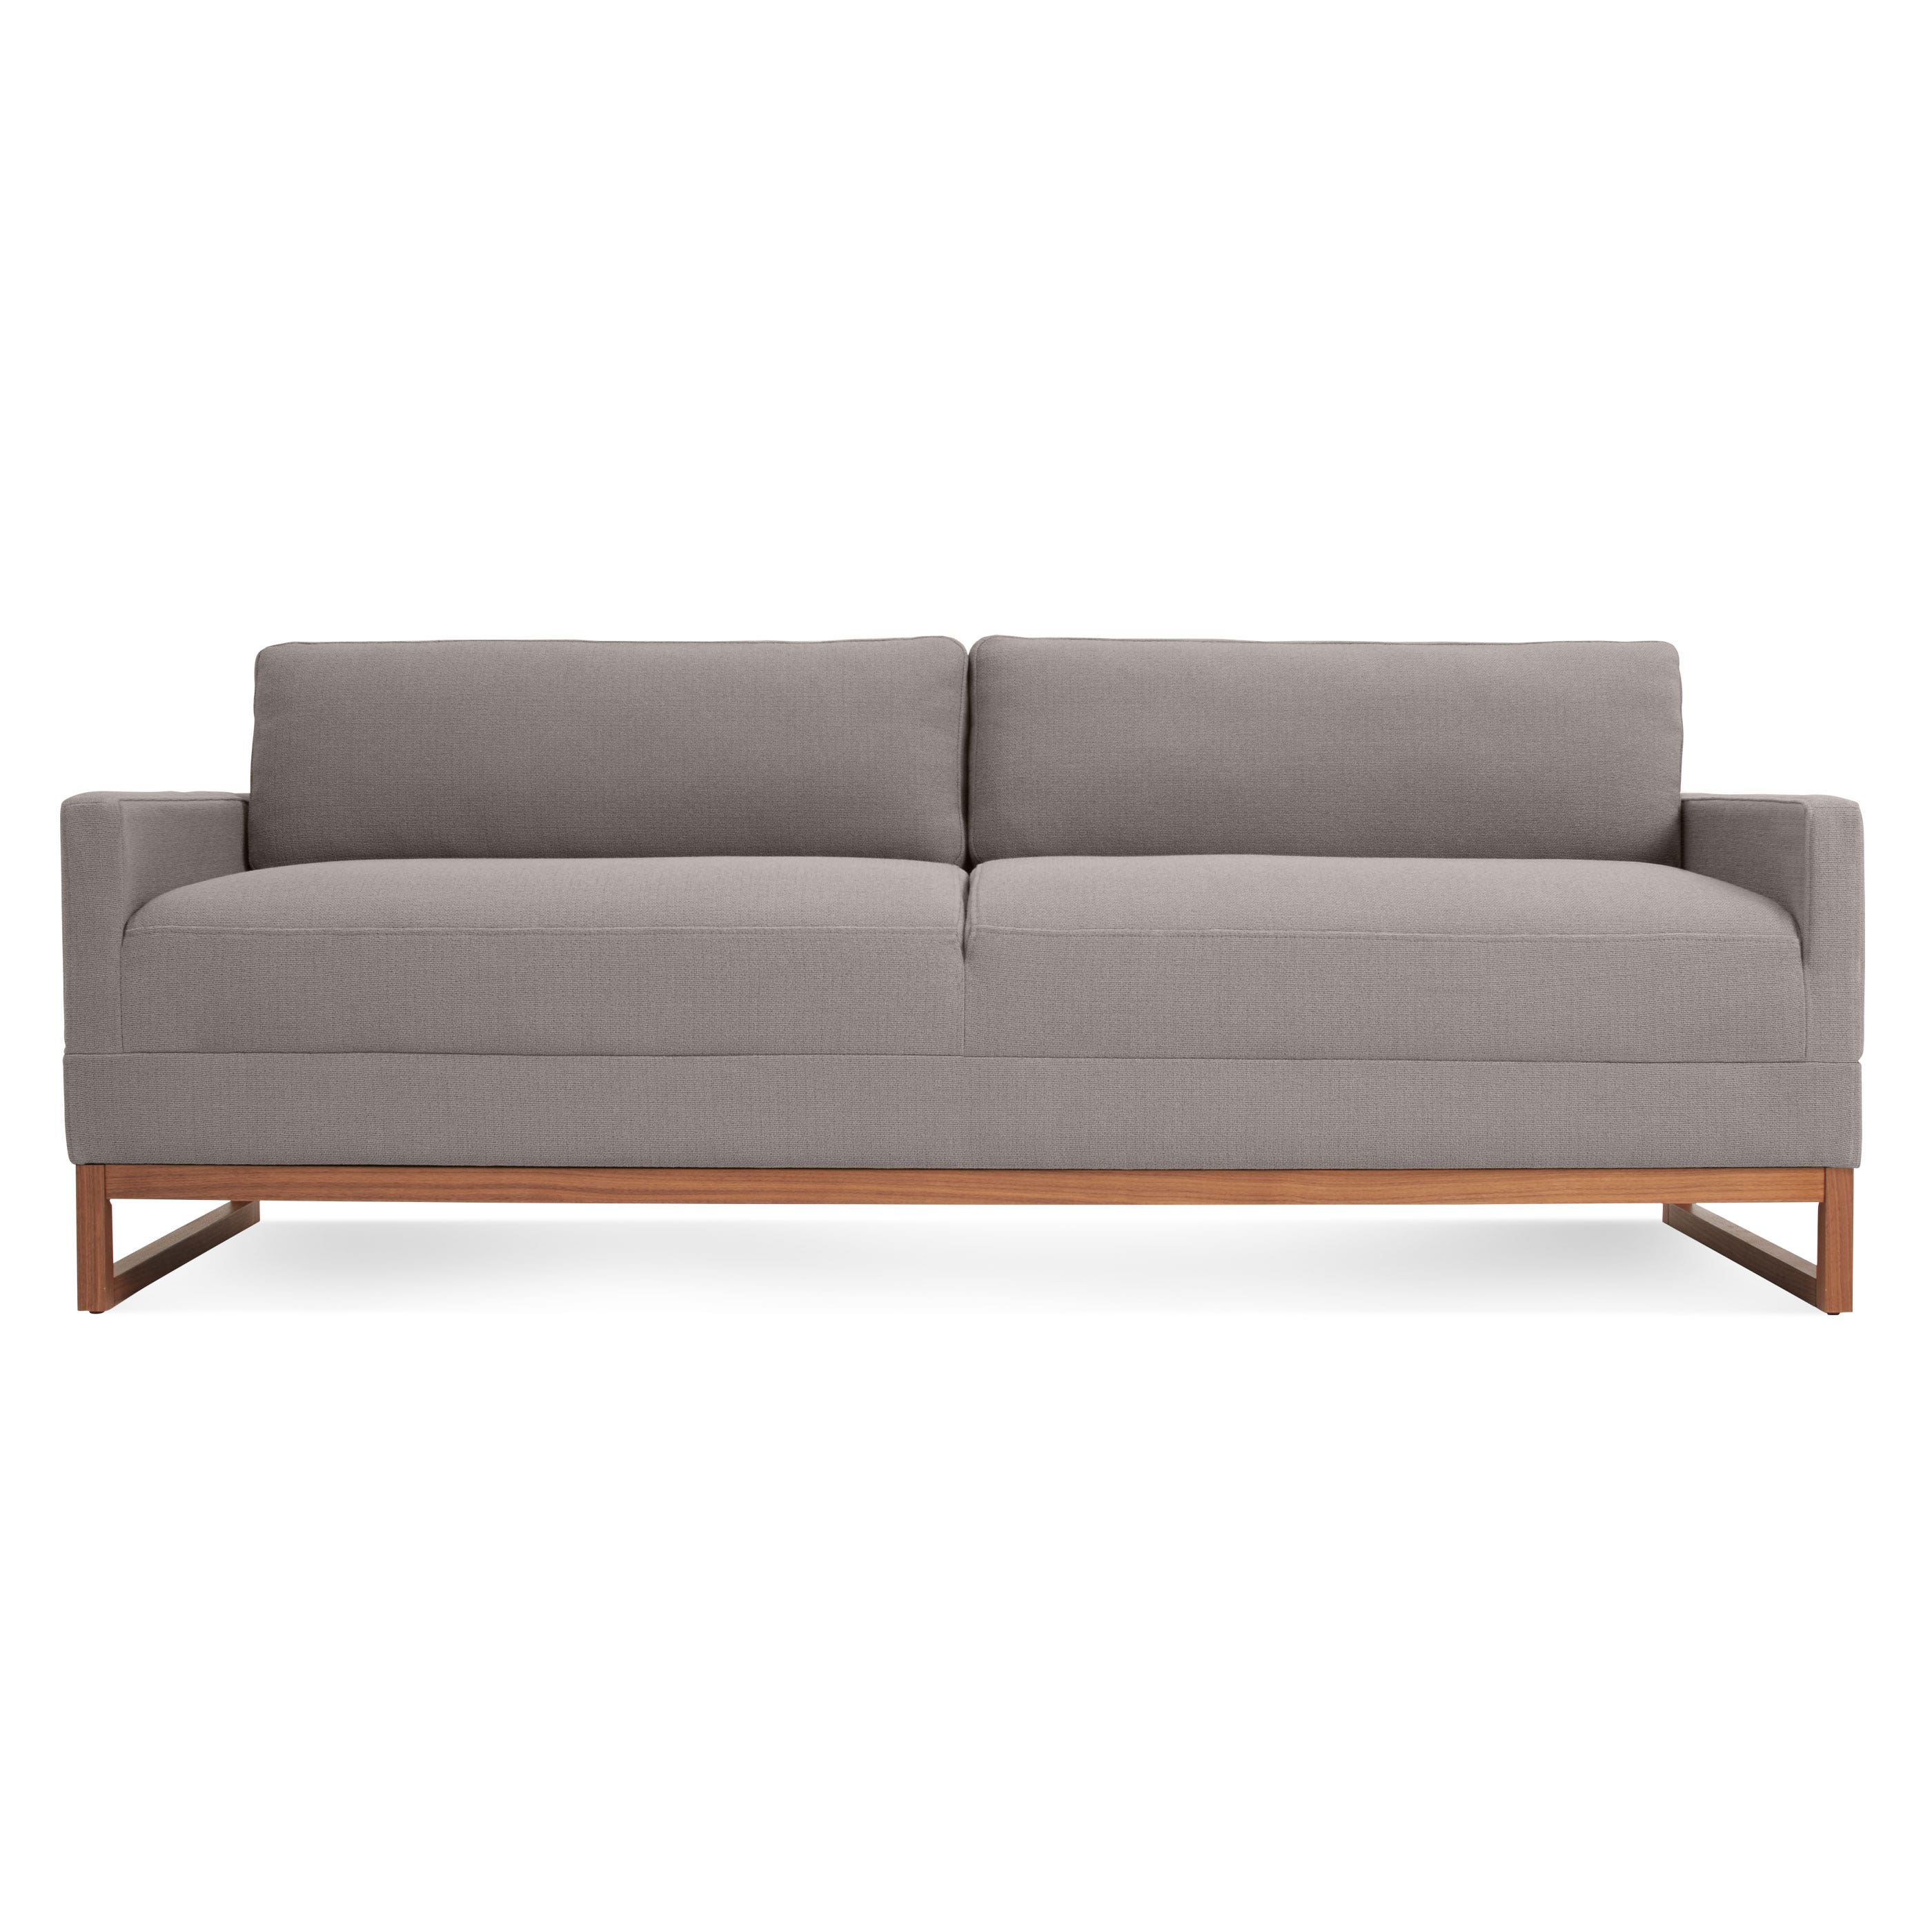 Sleeper Sofa Diplomat Convertible Sofa